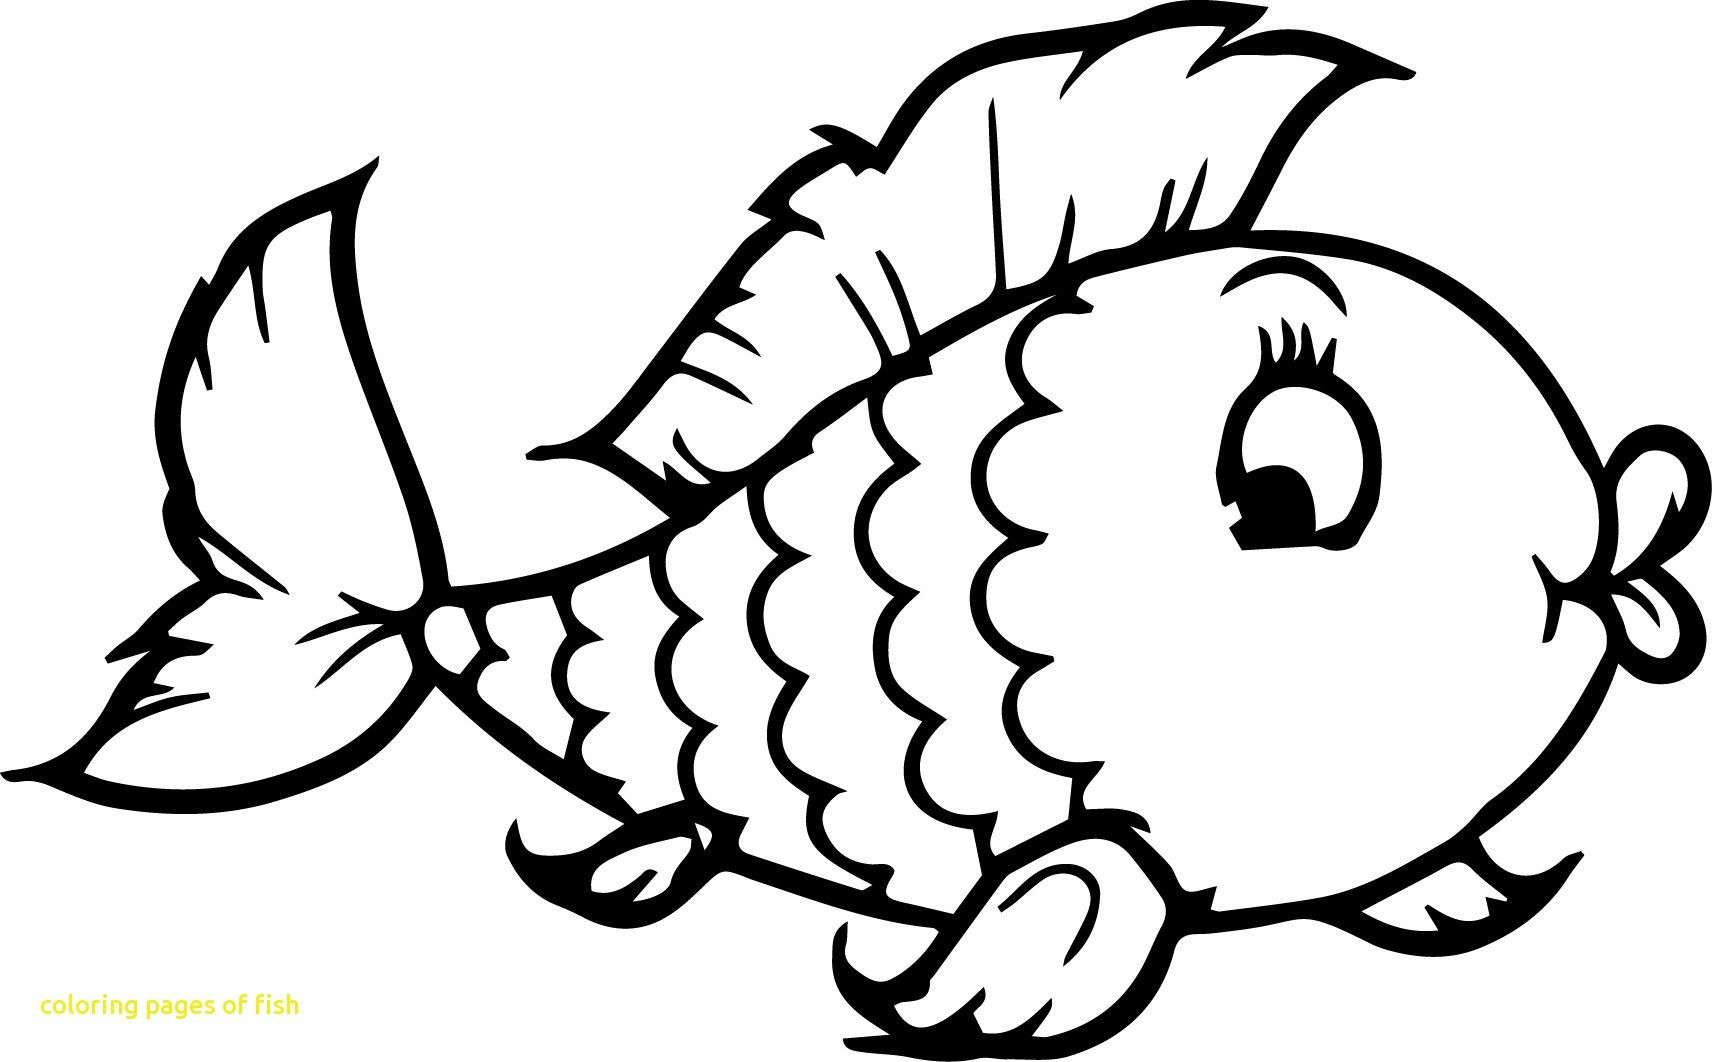 Saltwater Fish Coloring Pages For 2019 Http Www Wallpaperartdesignhd Us Saltwater Fish Coloring Fish Coloring Page Cartoon Coloring Pages Owl Coloring Pages